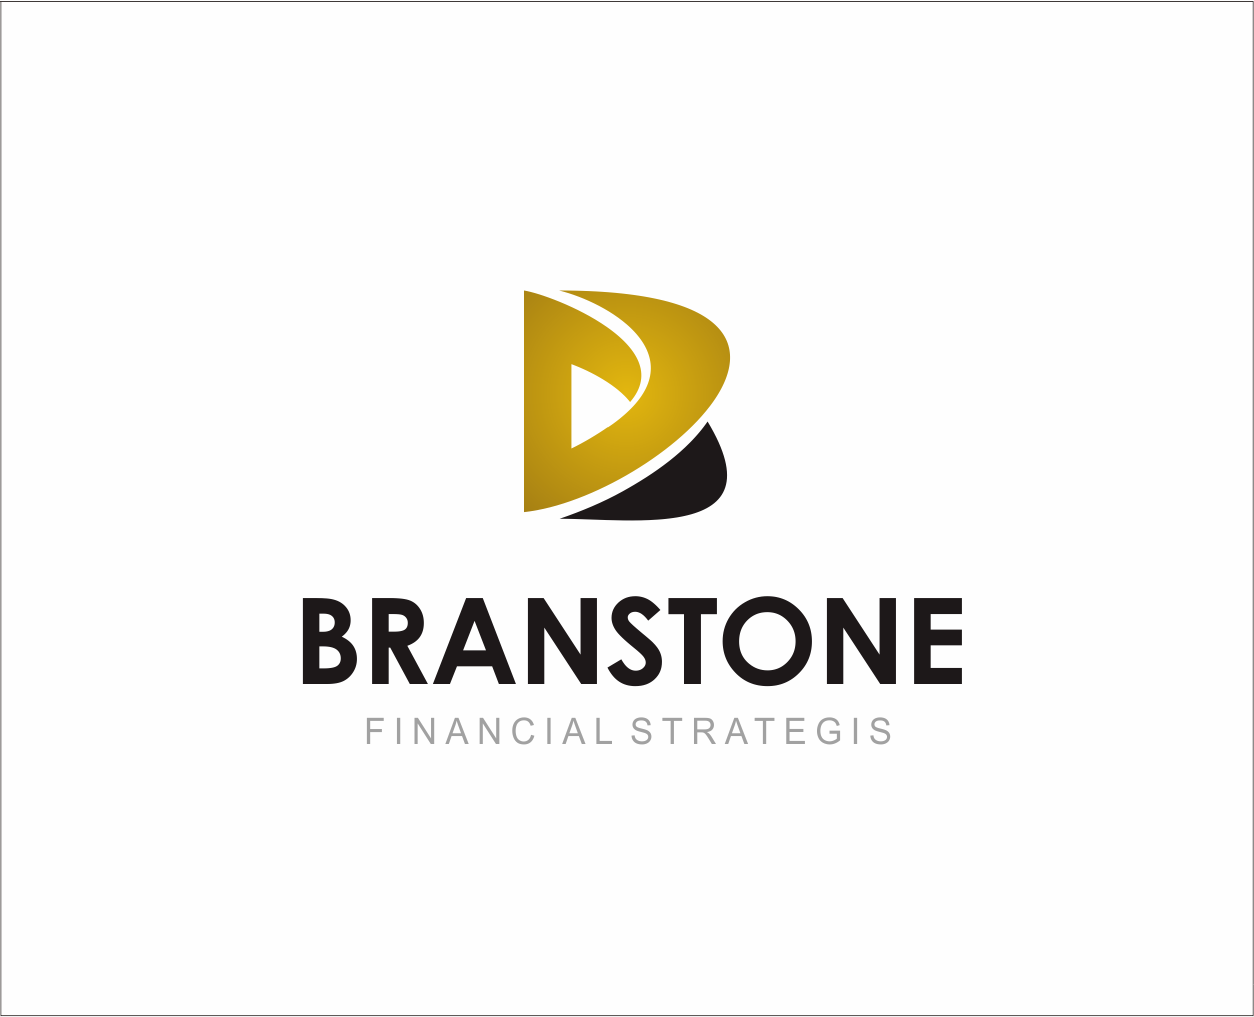 Logo Design by Armada Jamaluddin - Entry No. 173 in the Logo Design Contest Inspiring Logo Design for Branstone Financial Strategies.